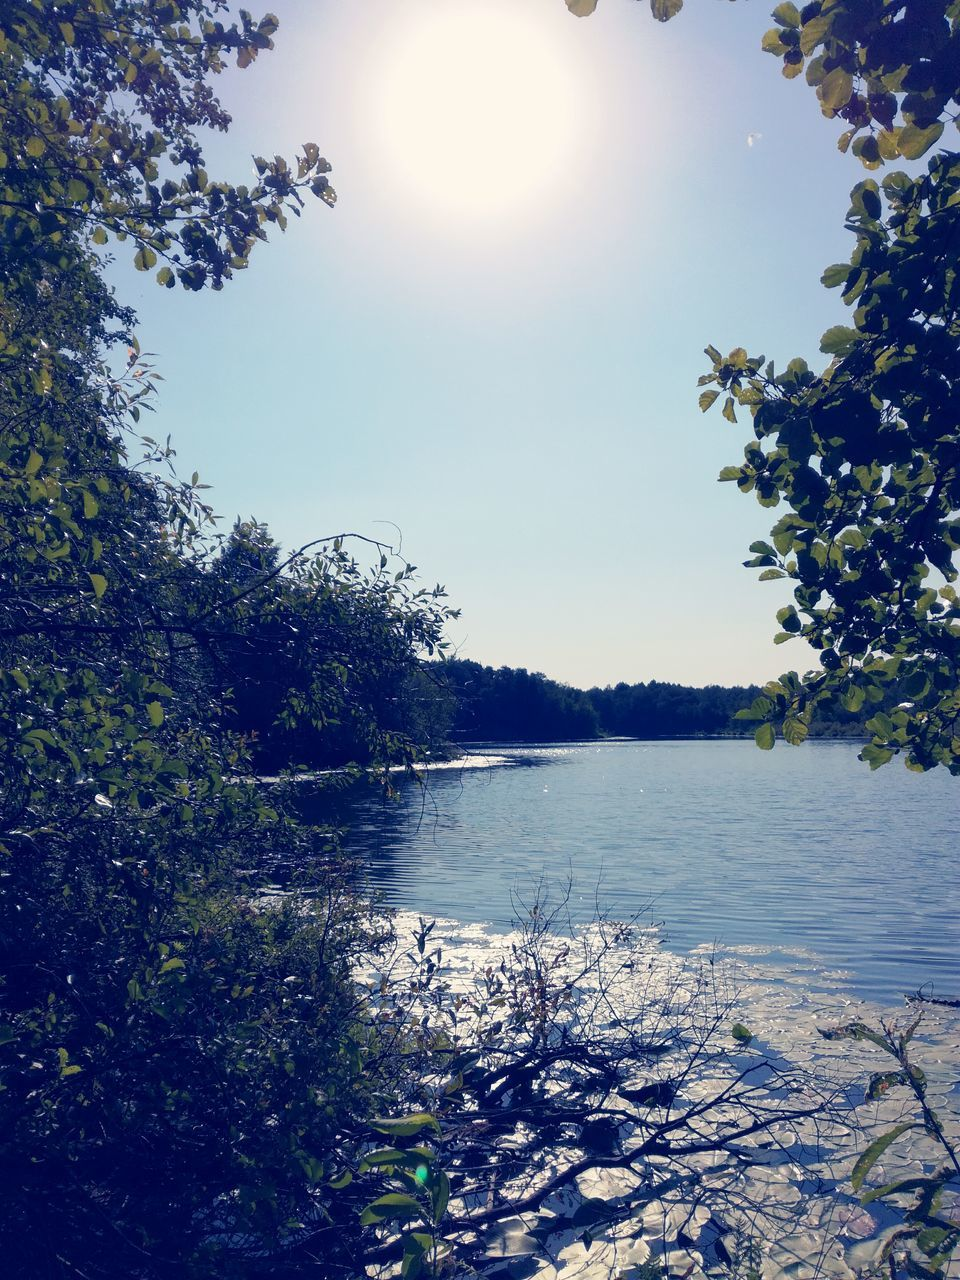 tree, sunlight, sun, sunbeam, nature, no people, water, outdoors, growth, beauty in nature, tranquil scene, day, tranquility, lake, scenics, plant, sky, branch, leaf, clear sky, scenery